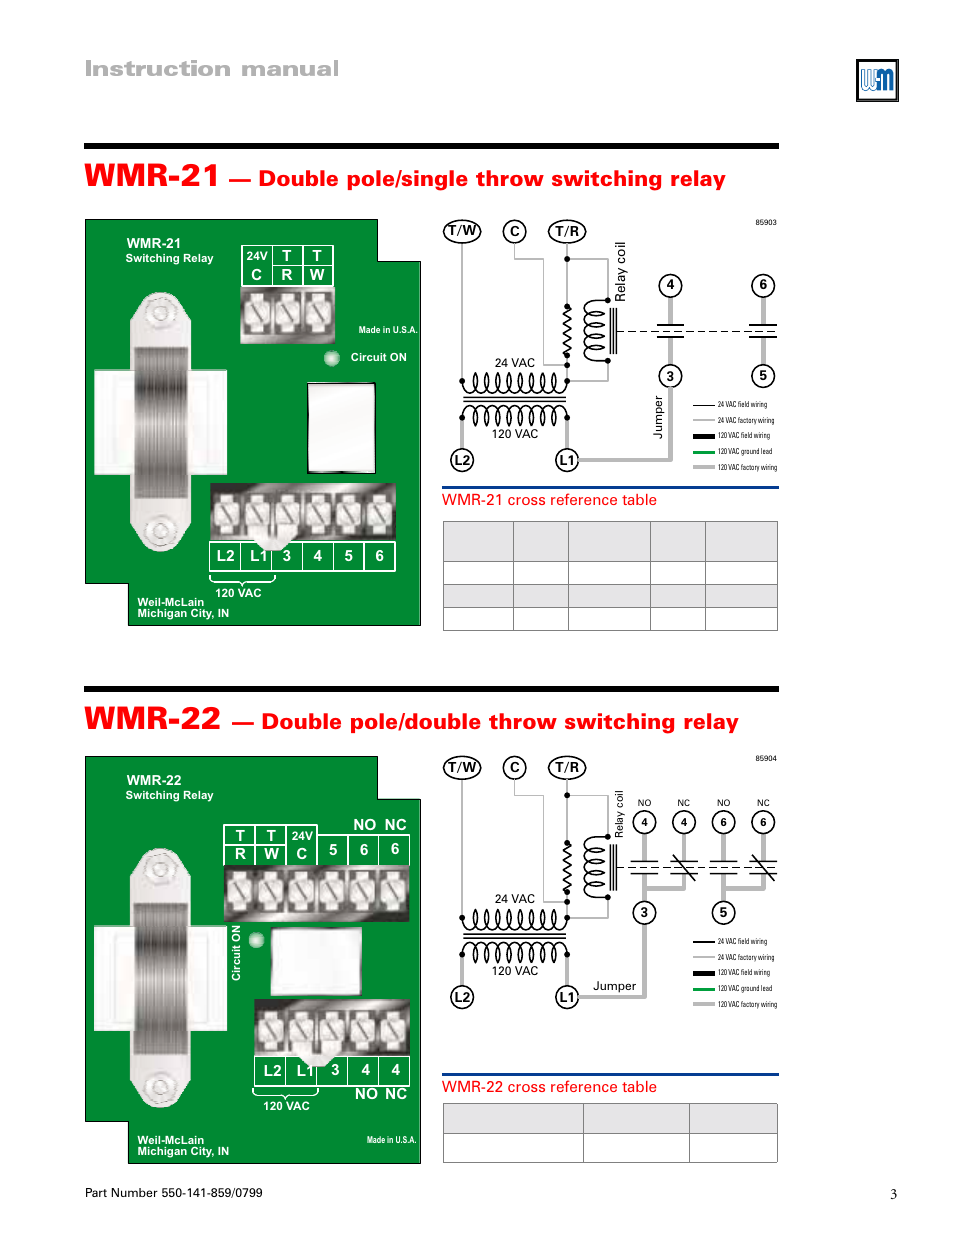 Ar821 Argo Relay Wiring Diagram Library Wmr 21 22 Instruction Manual Weil Mclain